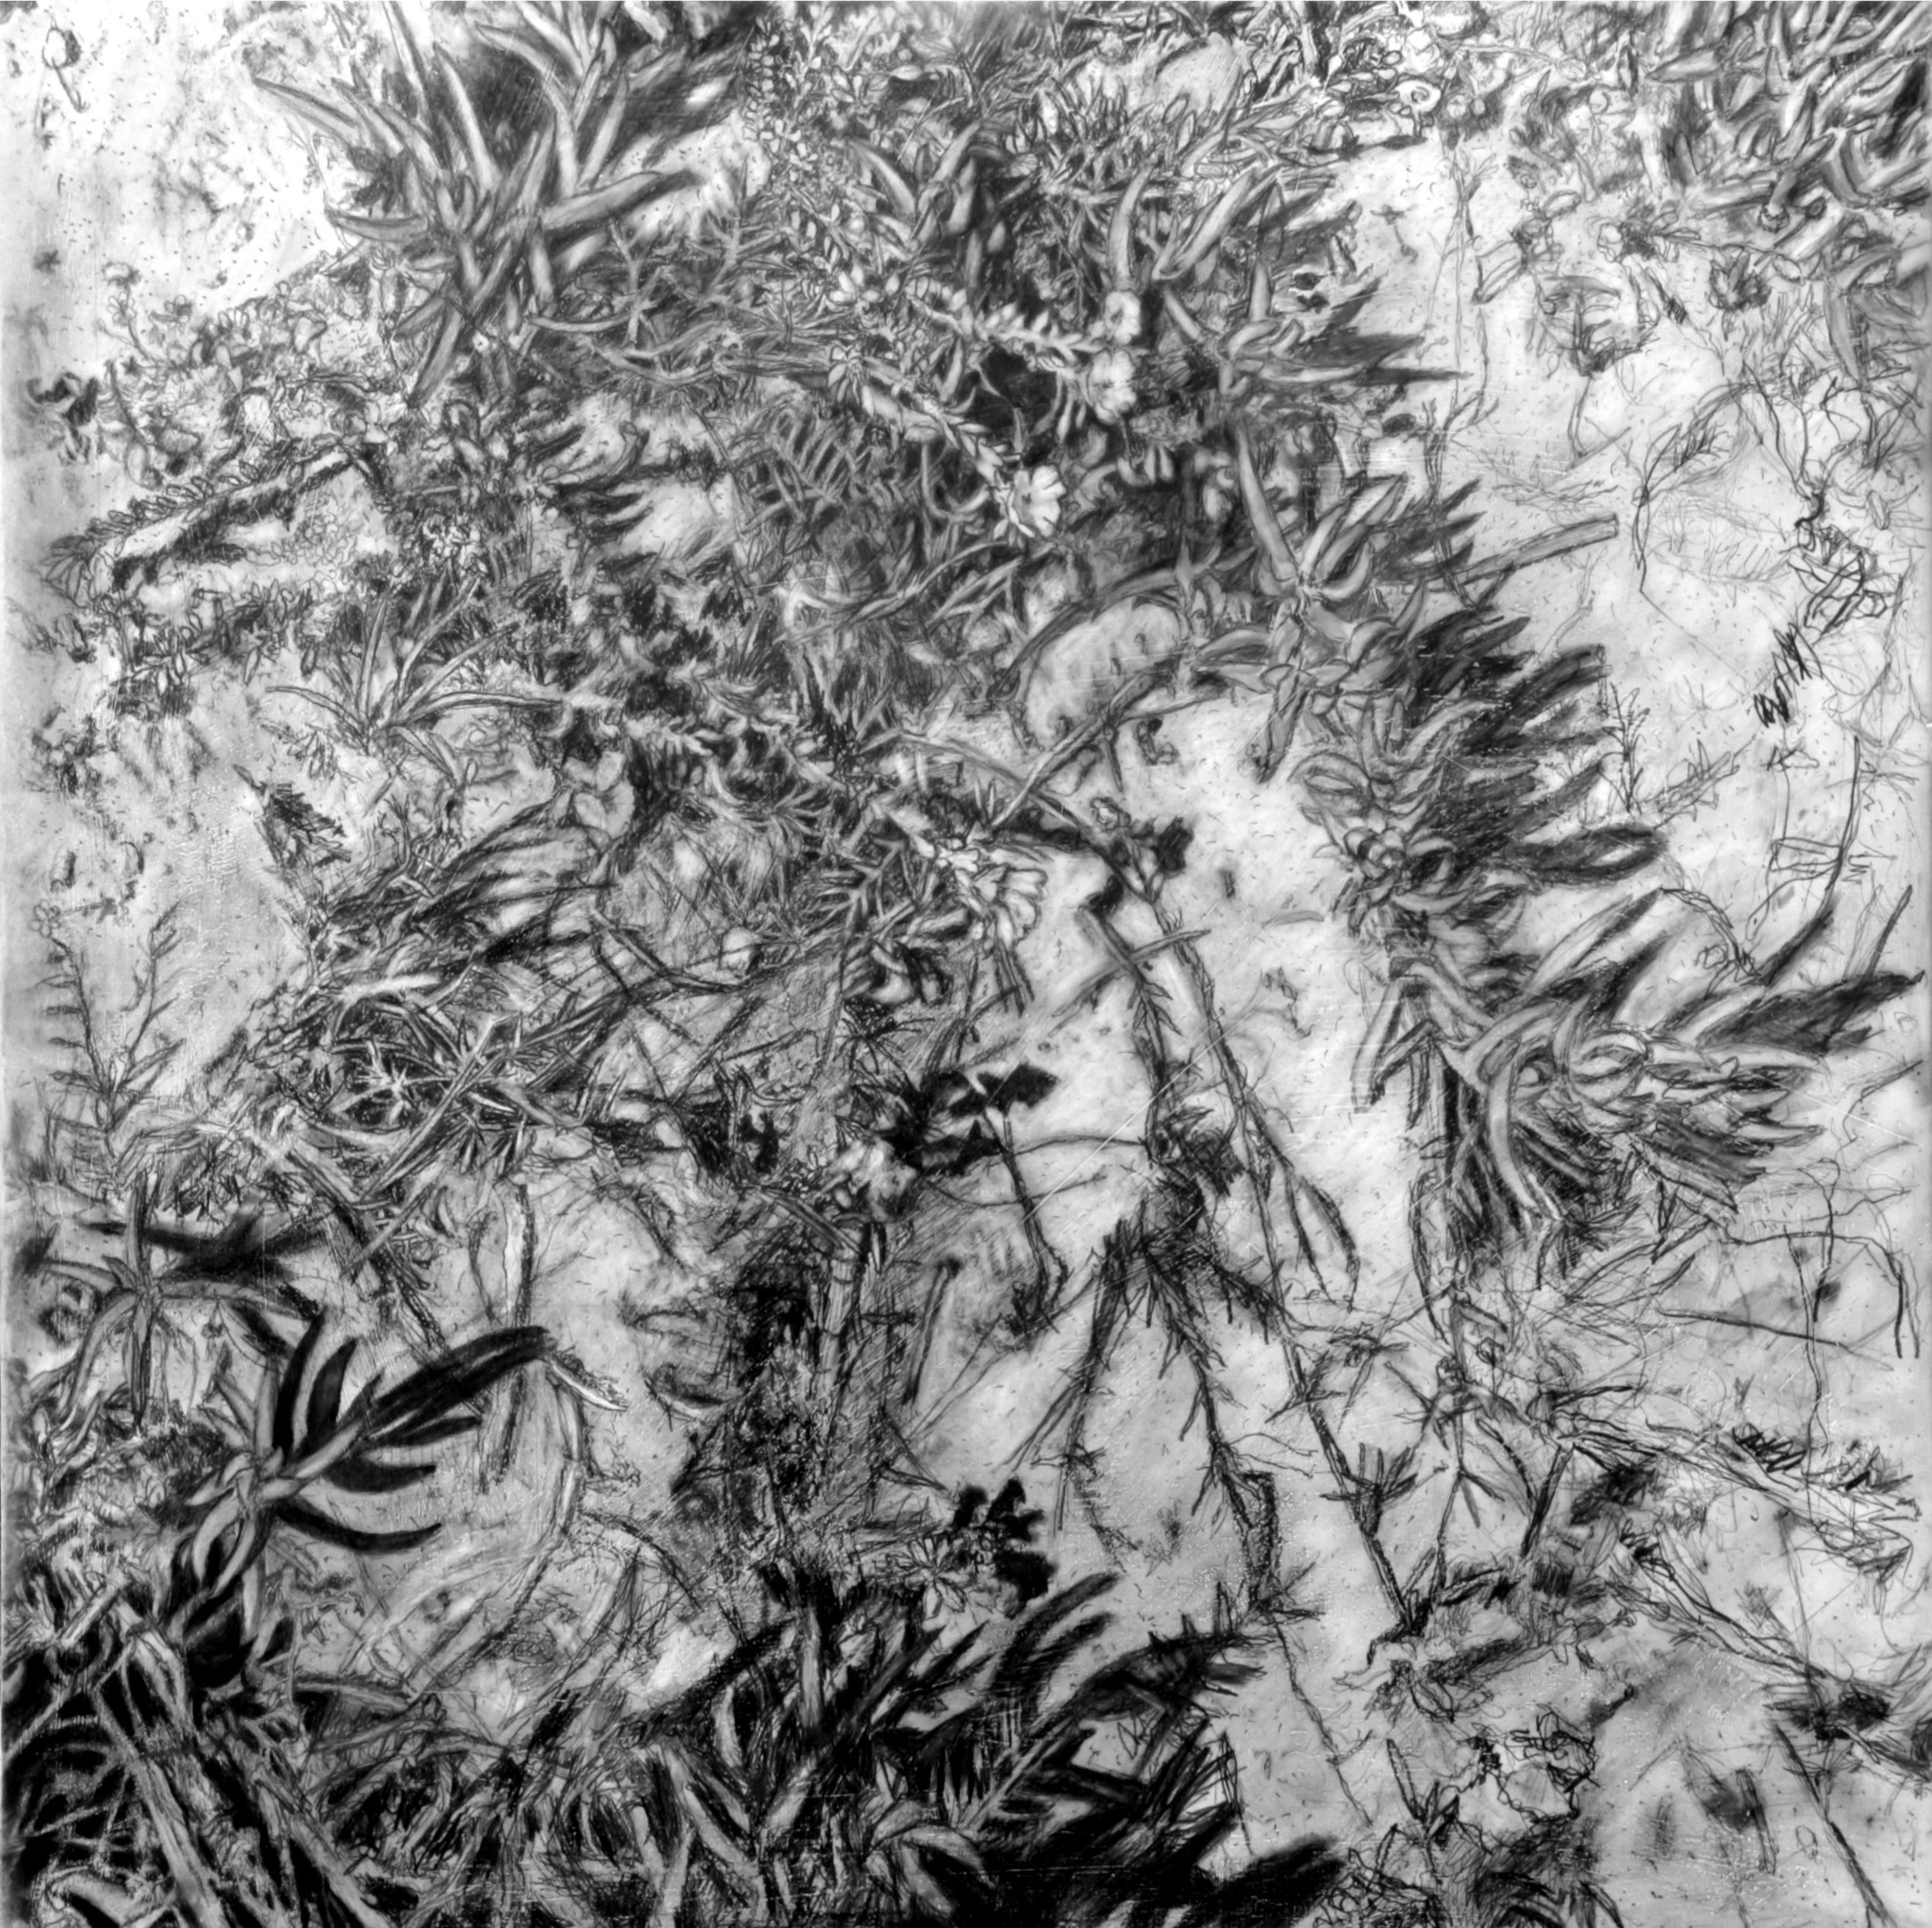 Jim Banks,  Ice Plant 1,  Graphite on board, 18x18